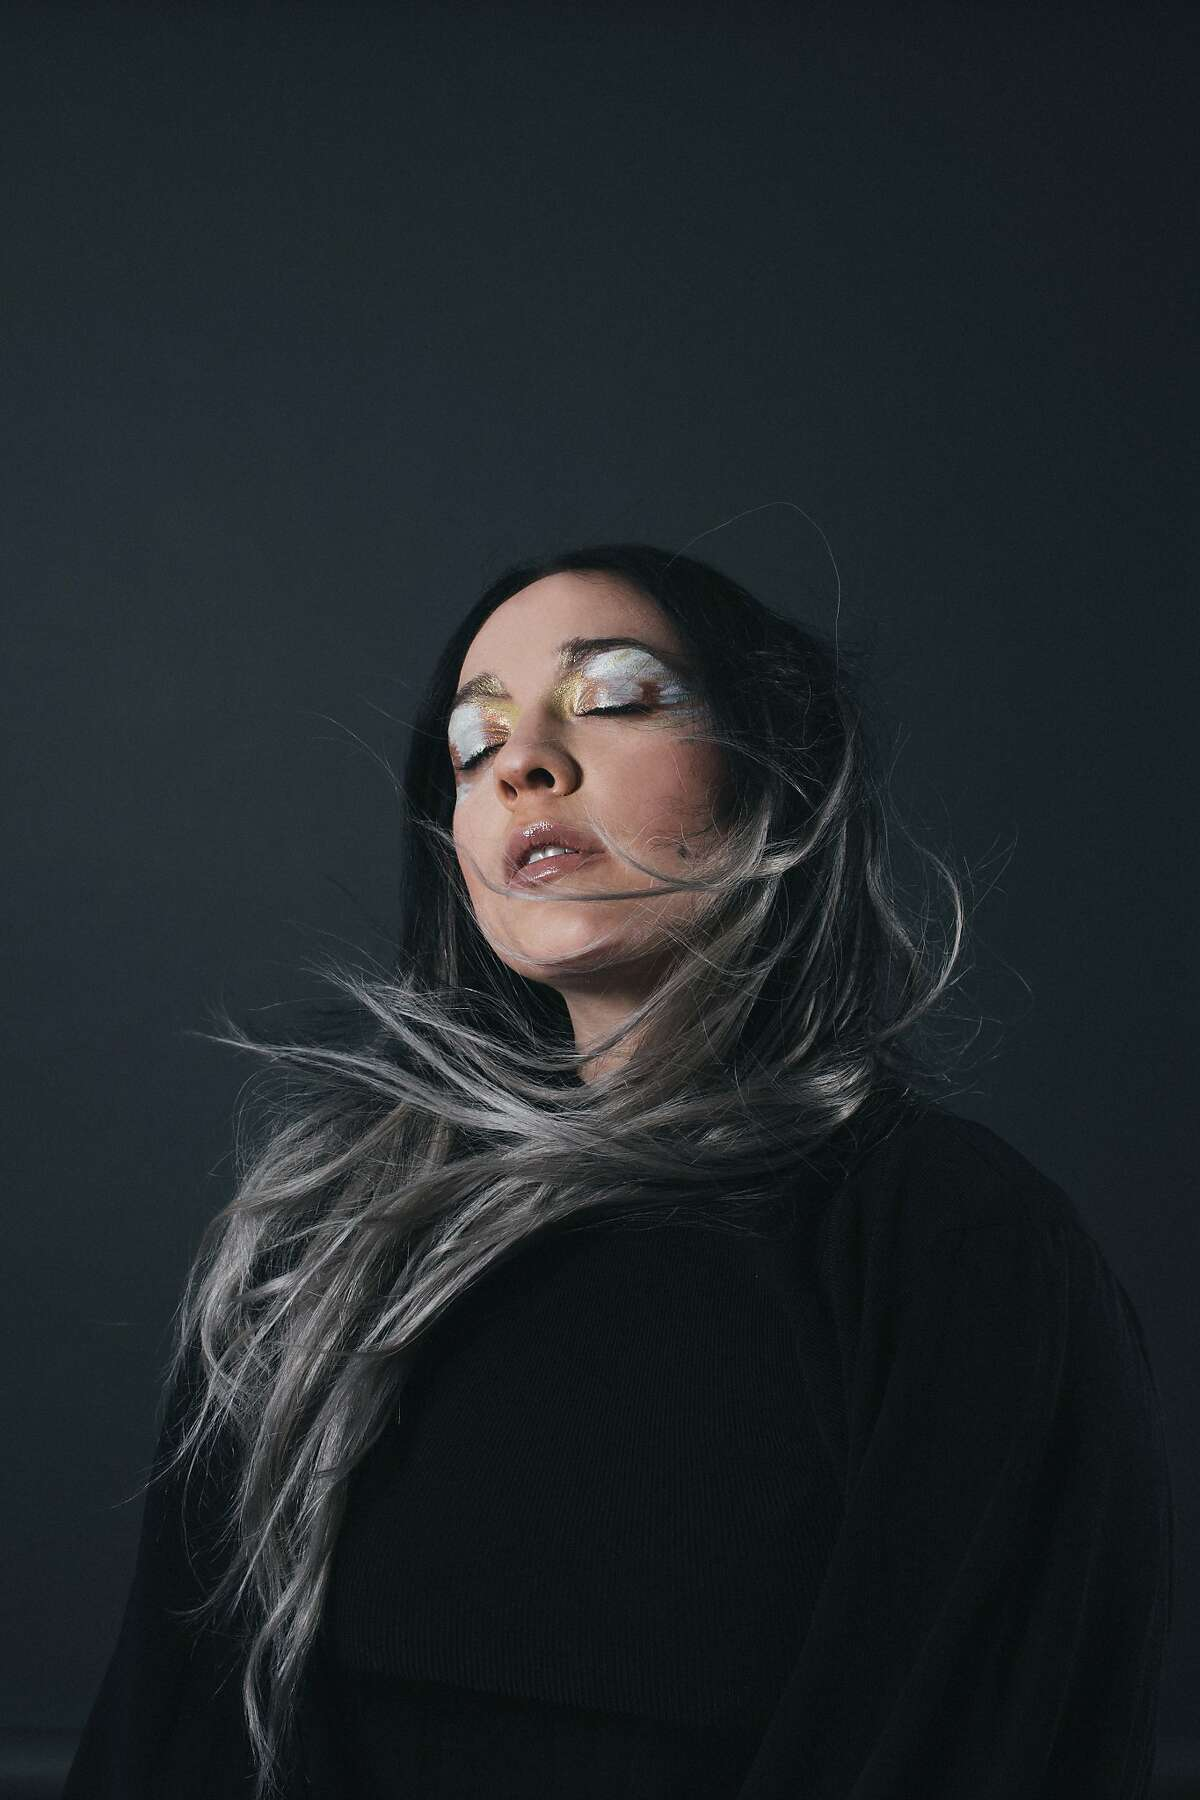 Carla Morrison, full nameCarla Patricia Morrison Flores(Tecate, Baja California, July 19, 1986),is a Mexicanindie-popsinger and composer.